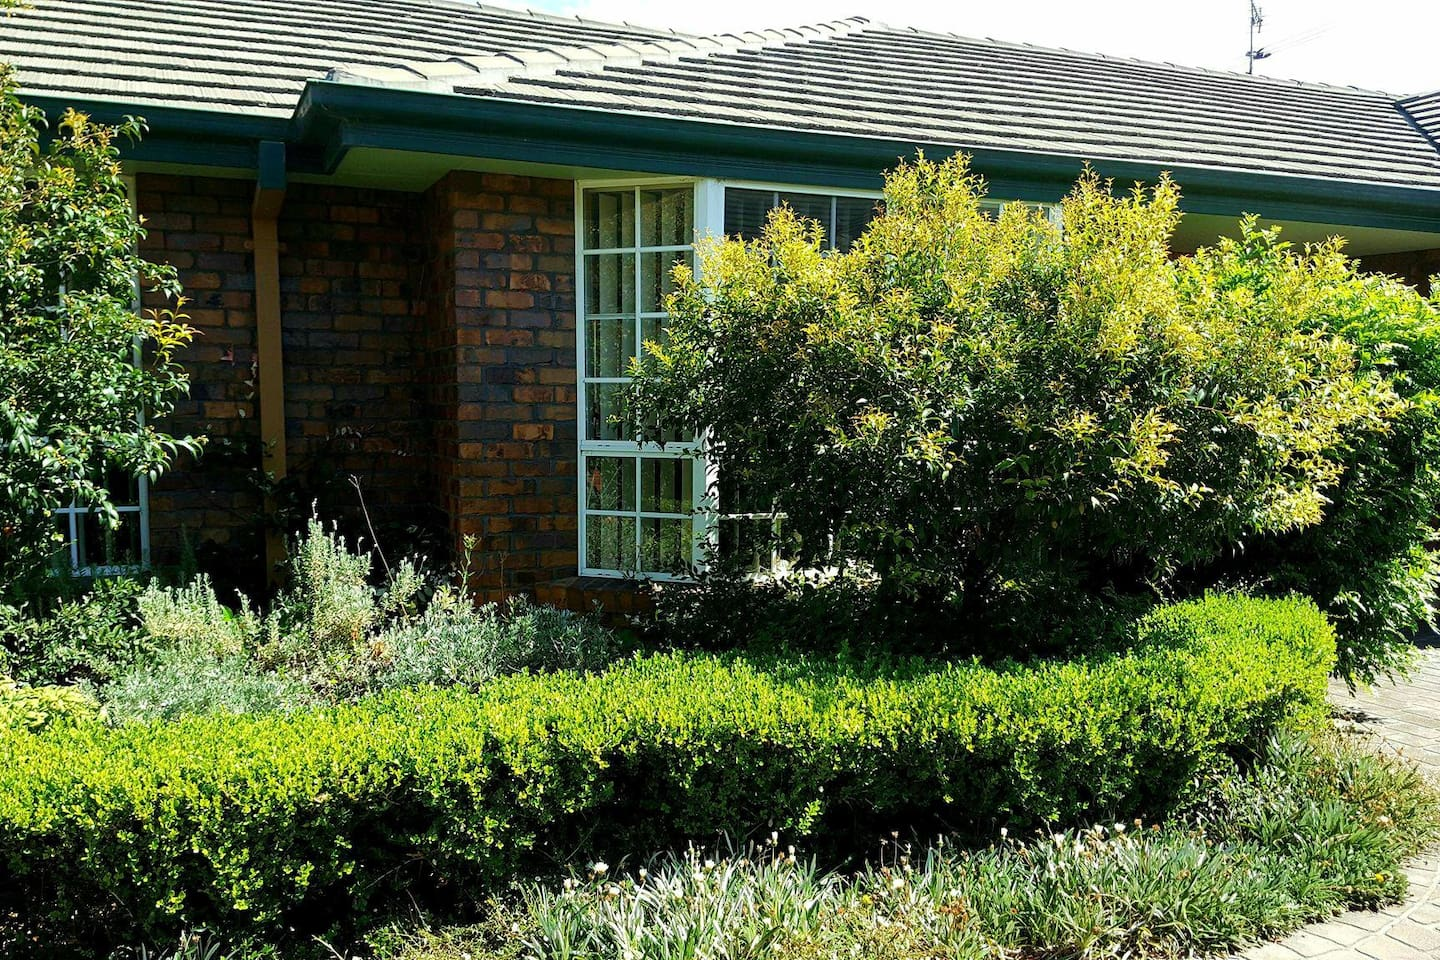 Secluded peaceful unit close to town. Walking distance to shopping centre and Country Music venues.